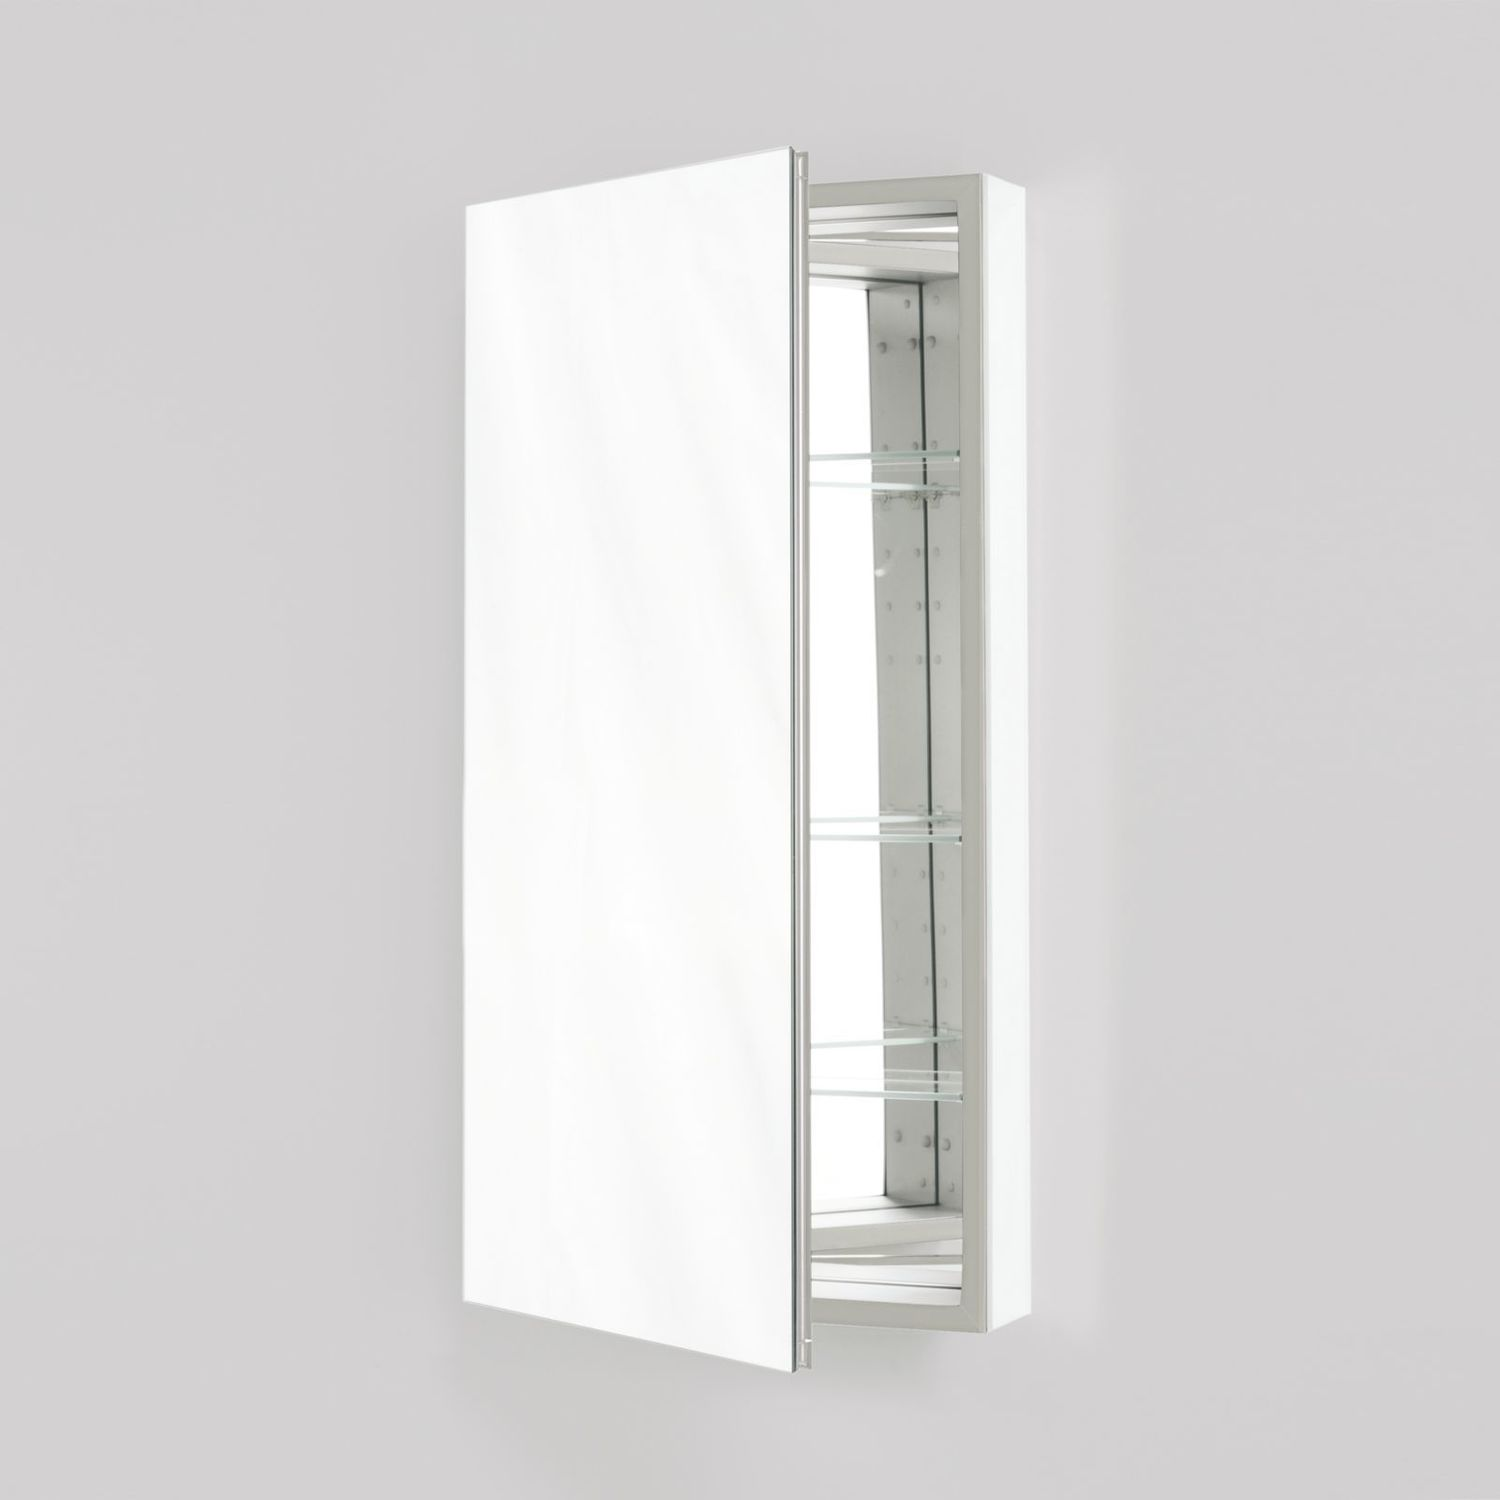 "Additional M Series 15-1/4"" X 30"" X 6"" Flat Top Cabinet With Polished Edge, Left Hinge and Electric"